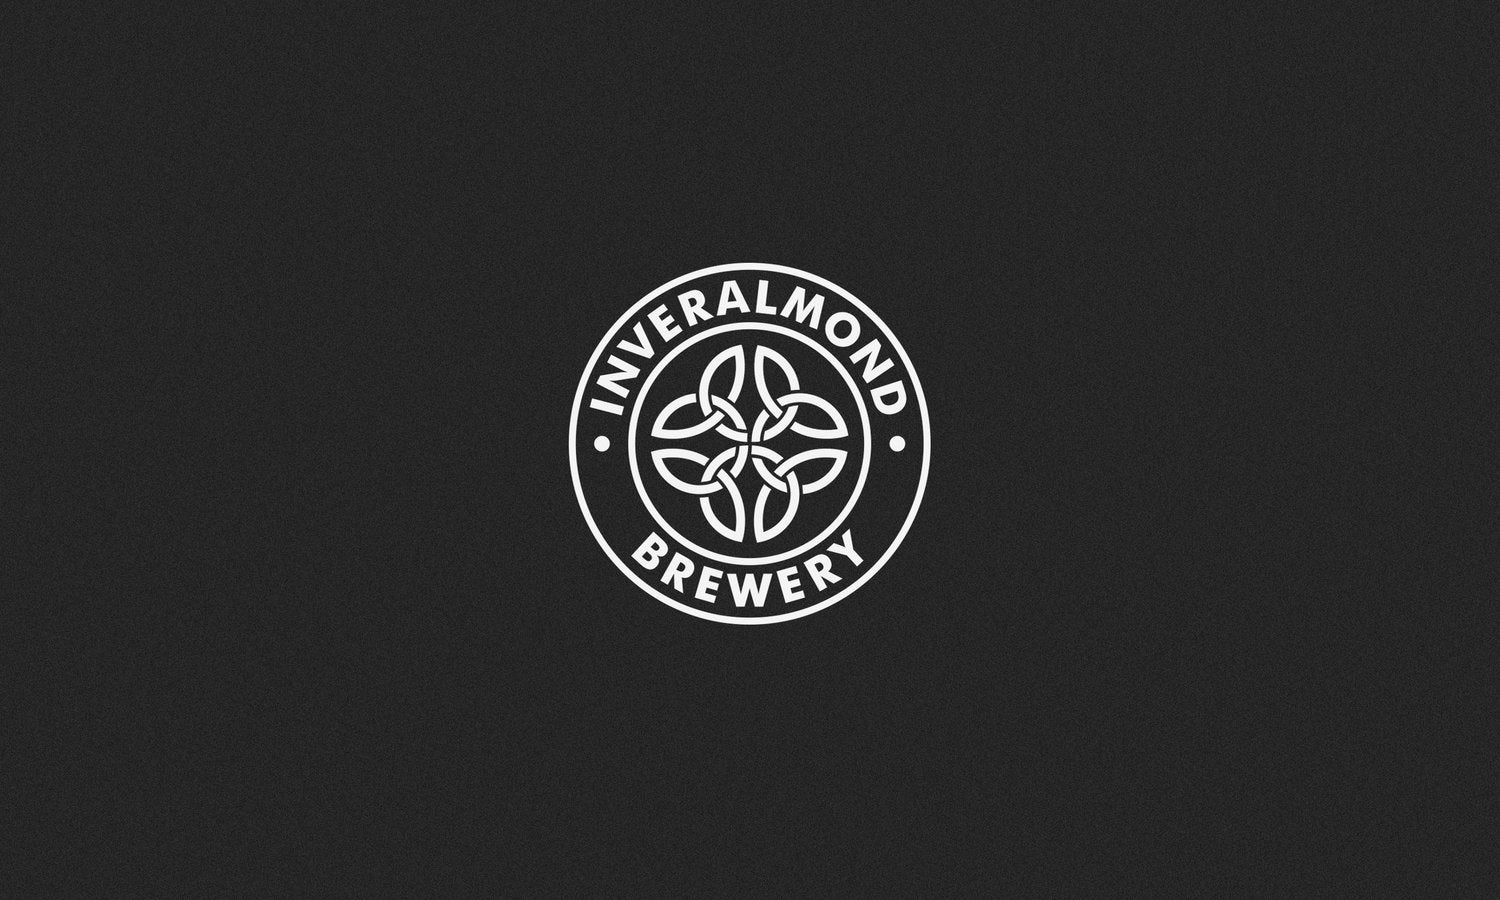 """Inveralmond's logo has been """"respectfully updated"""" - changes are subtle but the new mark has a more streamlined design"""